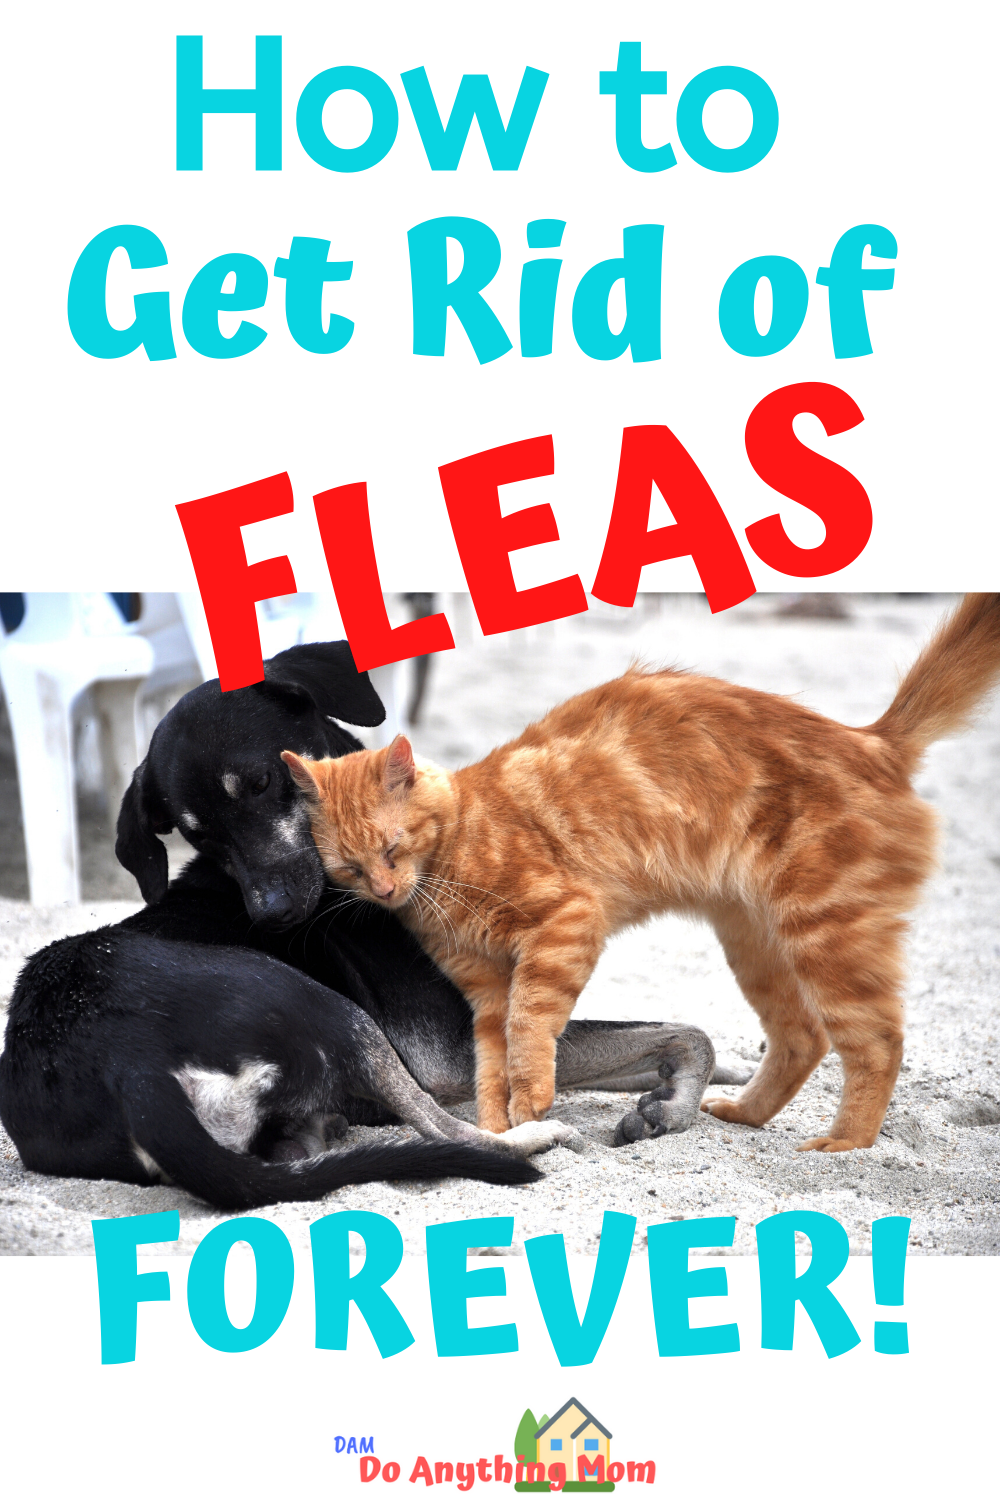 How To Get Rid Of Fleas Forever In 2020 Fleas Flea Spray For Cats Fleas In Yard